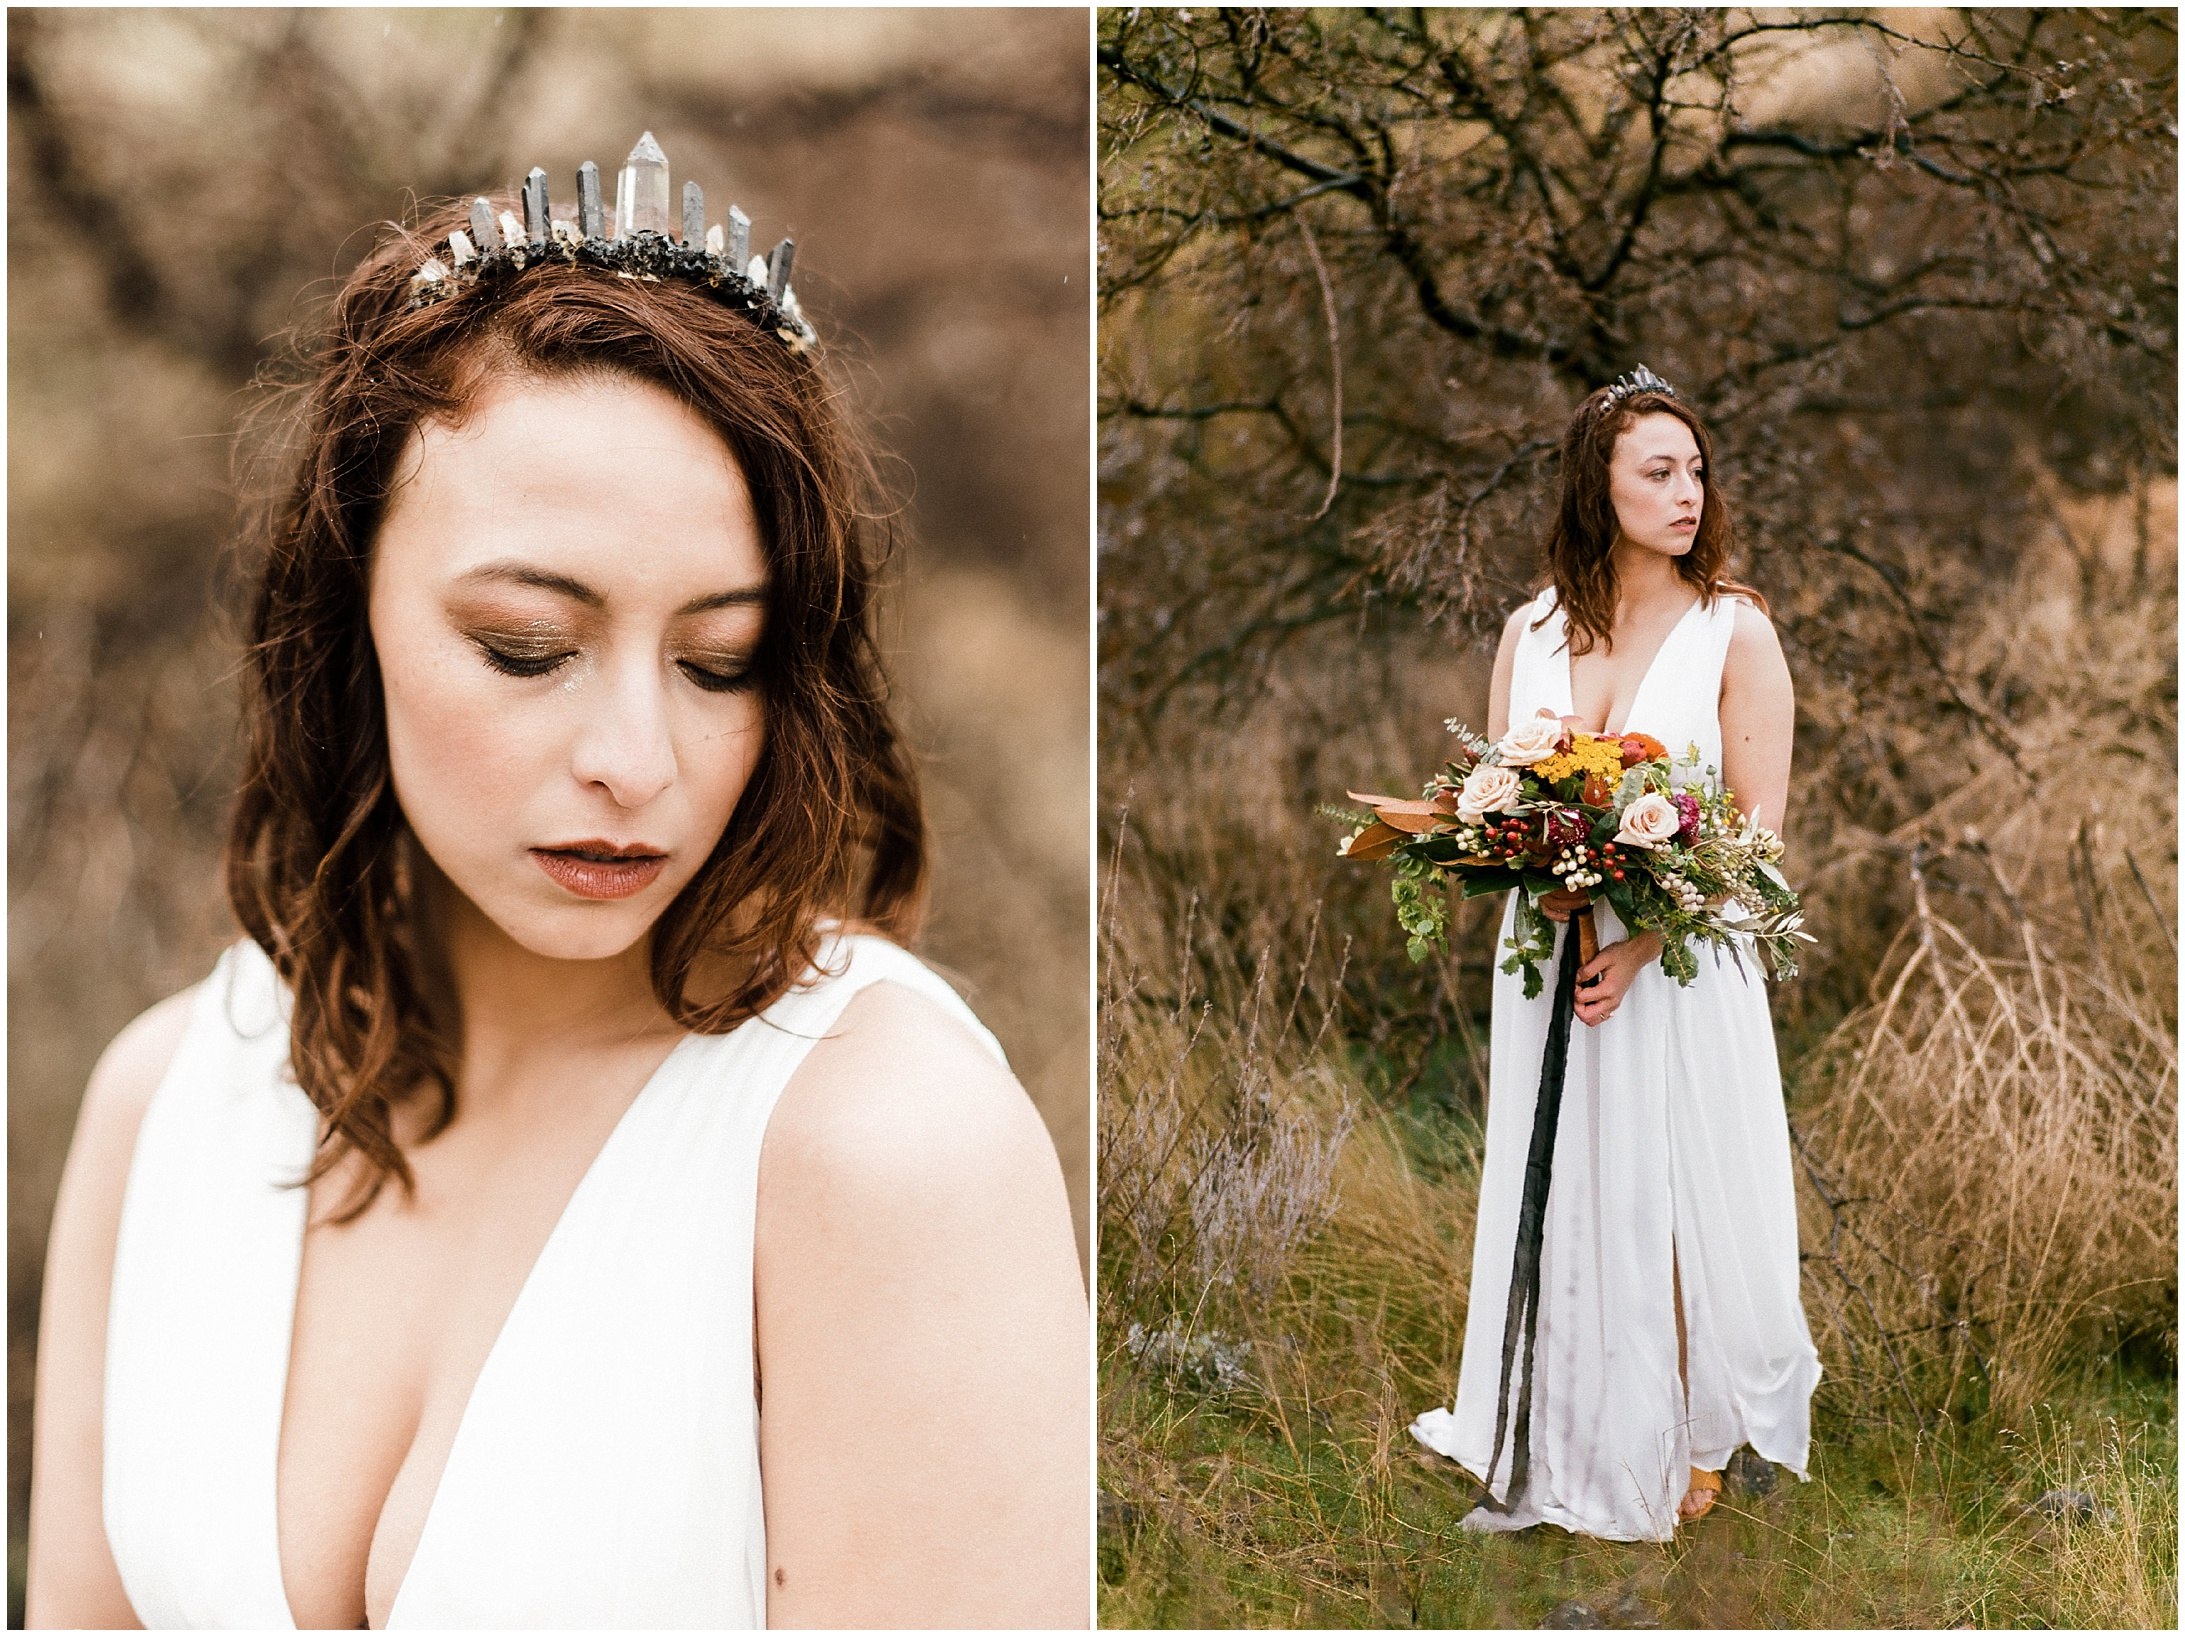 Diptych of a bride in a styled elopement at Lyon's Ferry State Park by Forthright Photo